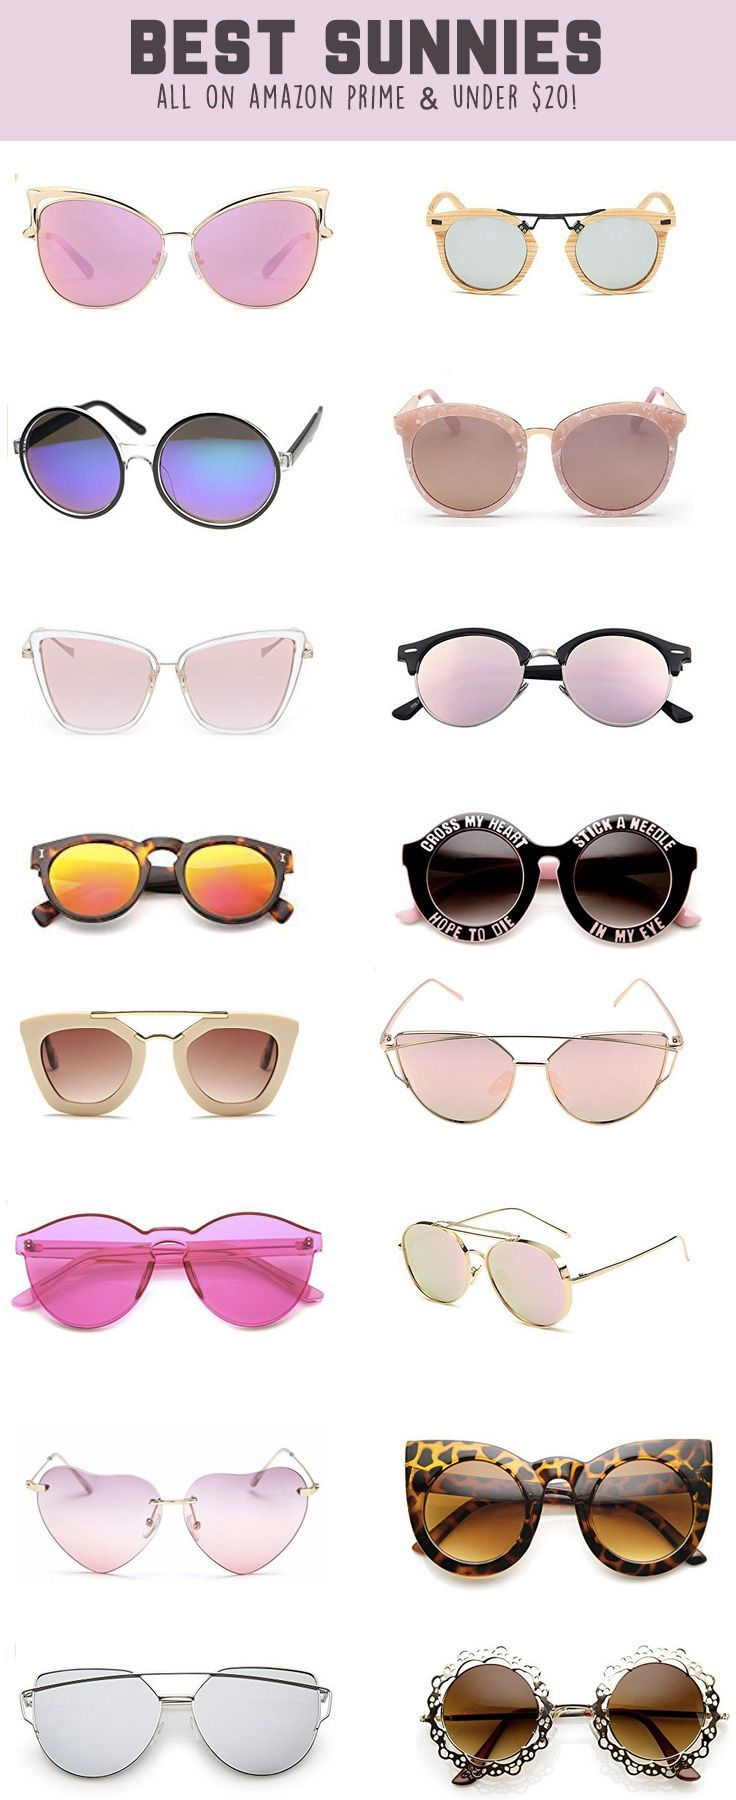 dfe98dbc02163 Cute women s sunglasses on a budget! All of these sunglasses are under  20  on Amazon prime, lots are even under  10! The cutest rose gold, vintage,  cat eye, ...